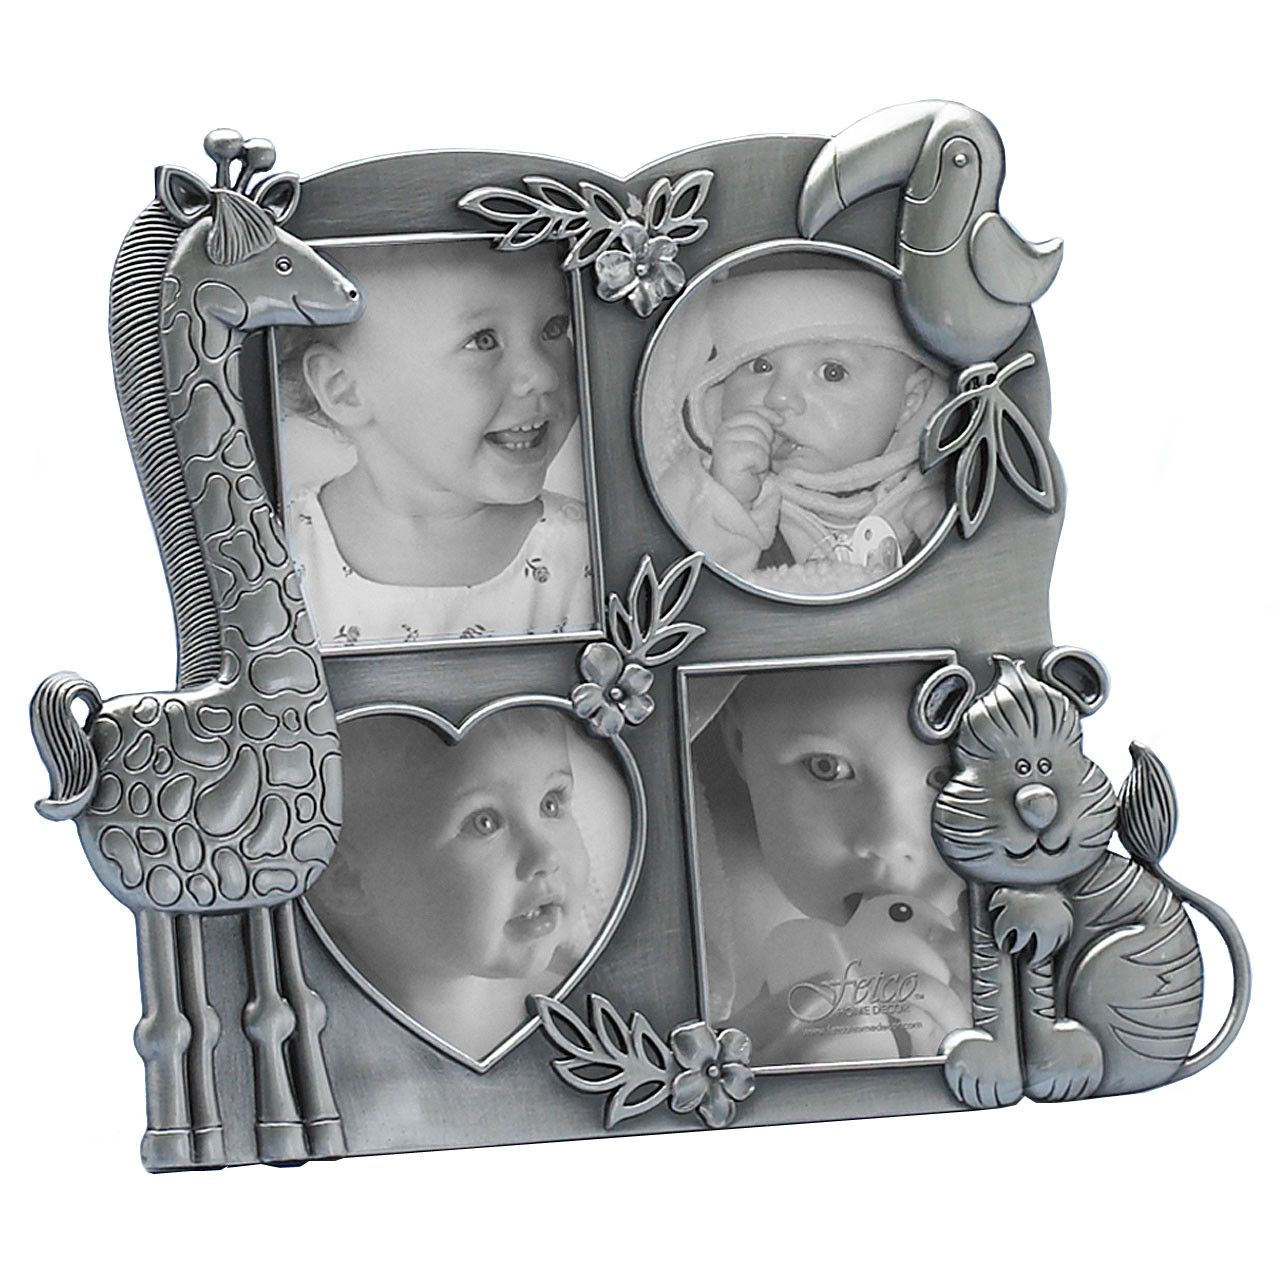 Fetco home decor picture frames fetco home d cor fetco home fetco home decor baby jungle four picture opening collage jeuxipadfo Gallery